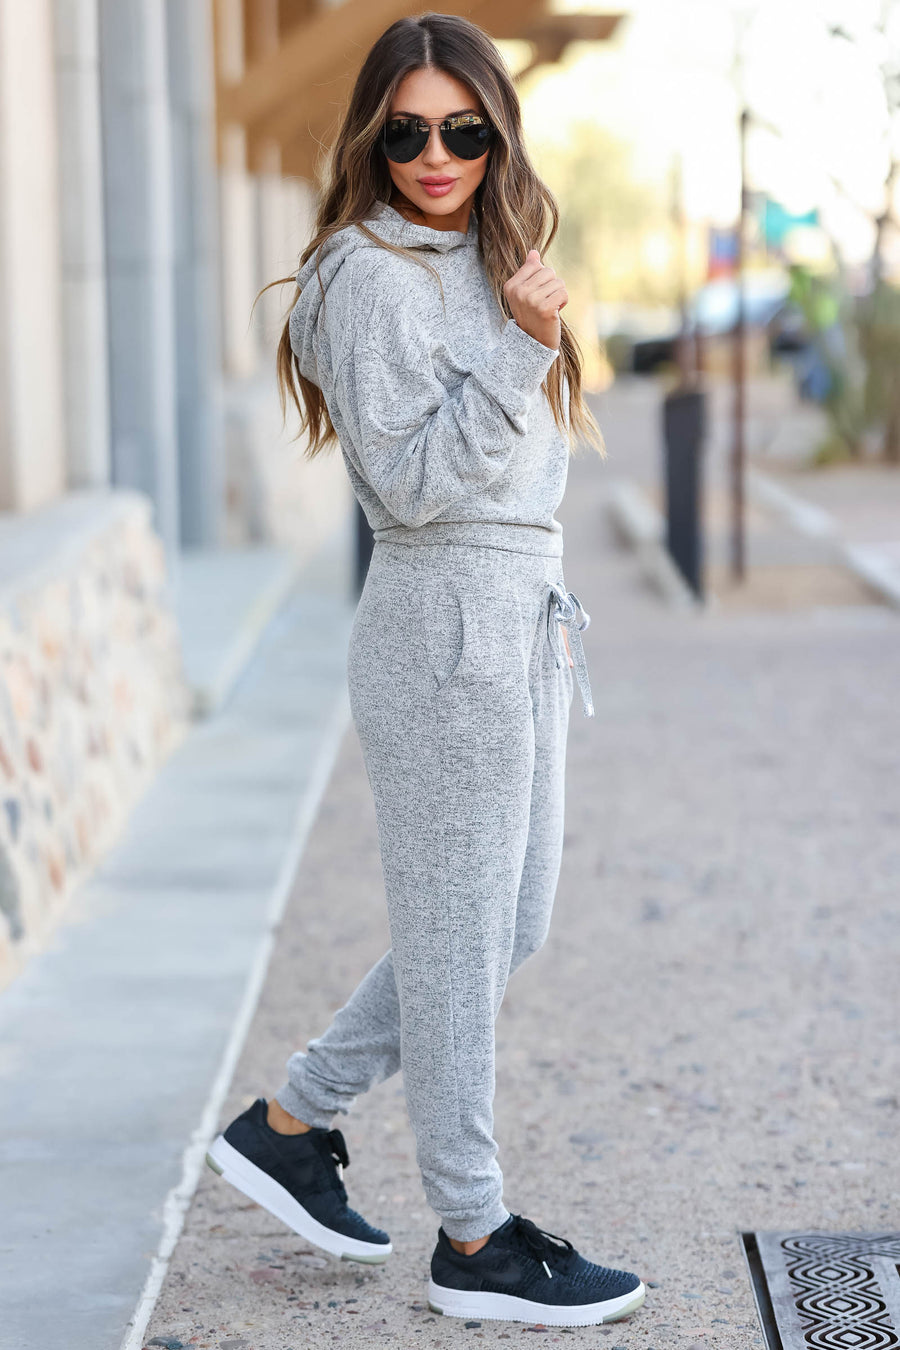 Off The Clock Loungewear - Heather Grey closet candy women's trendy loungewear hooded top and jogger sweatpants sitting